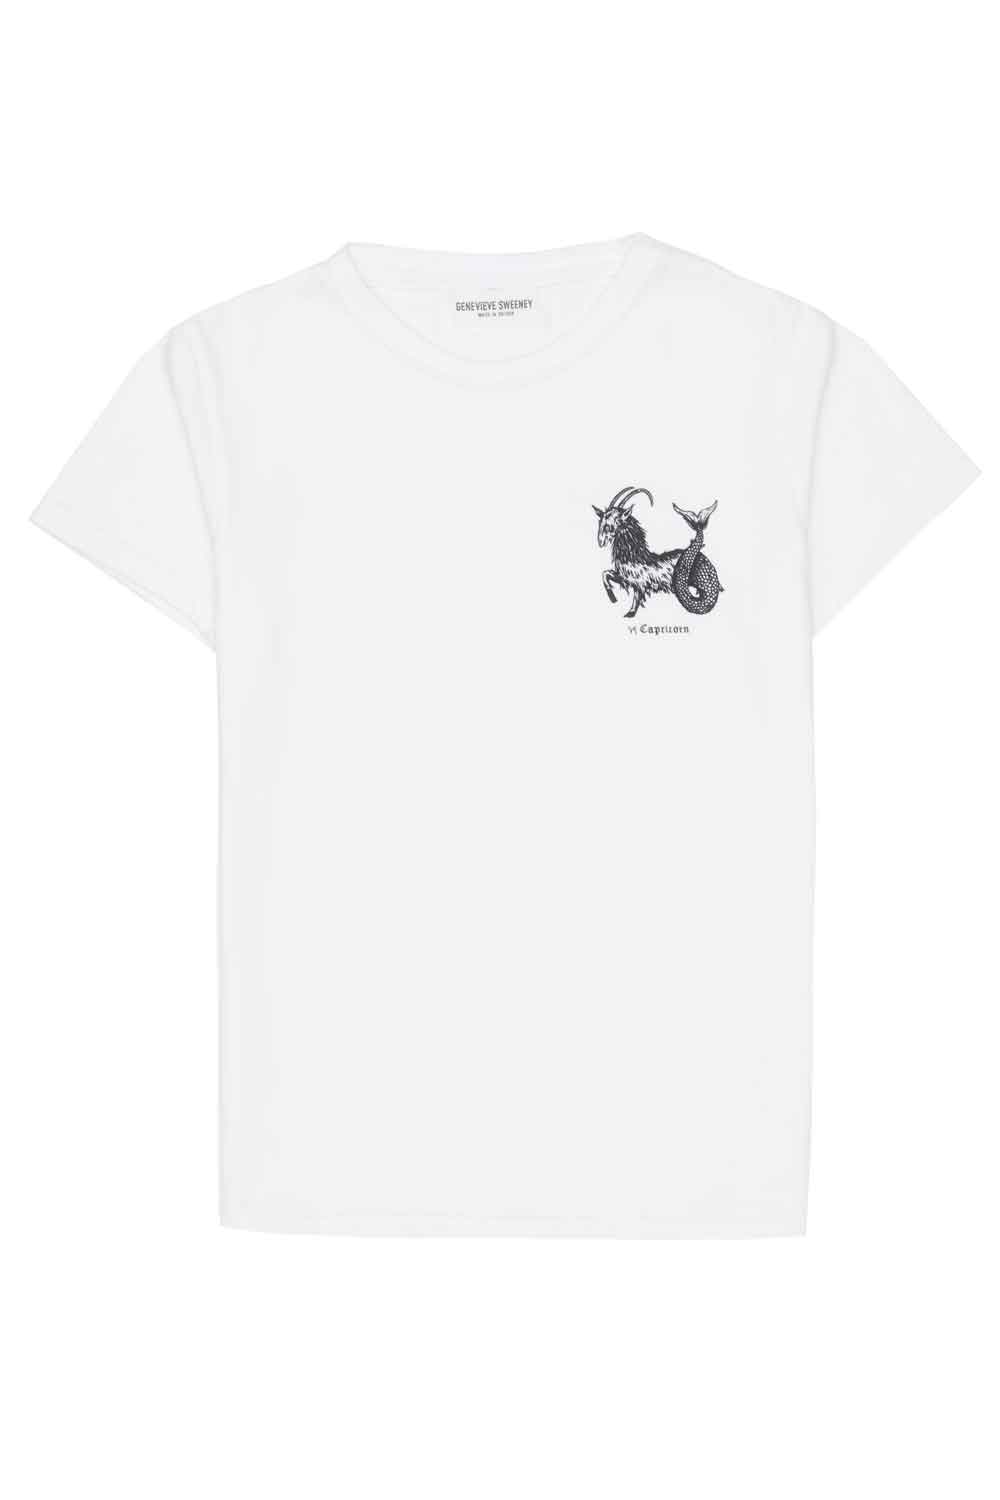 Adults Zodiac Tshirt Made in Britain Capricorn